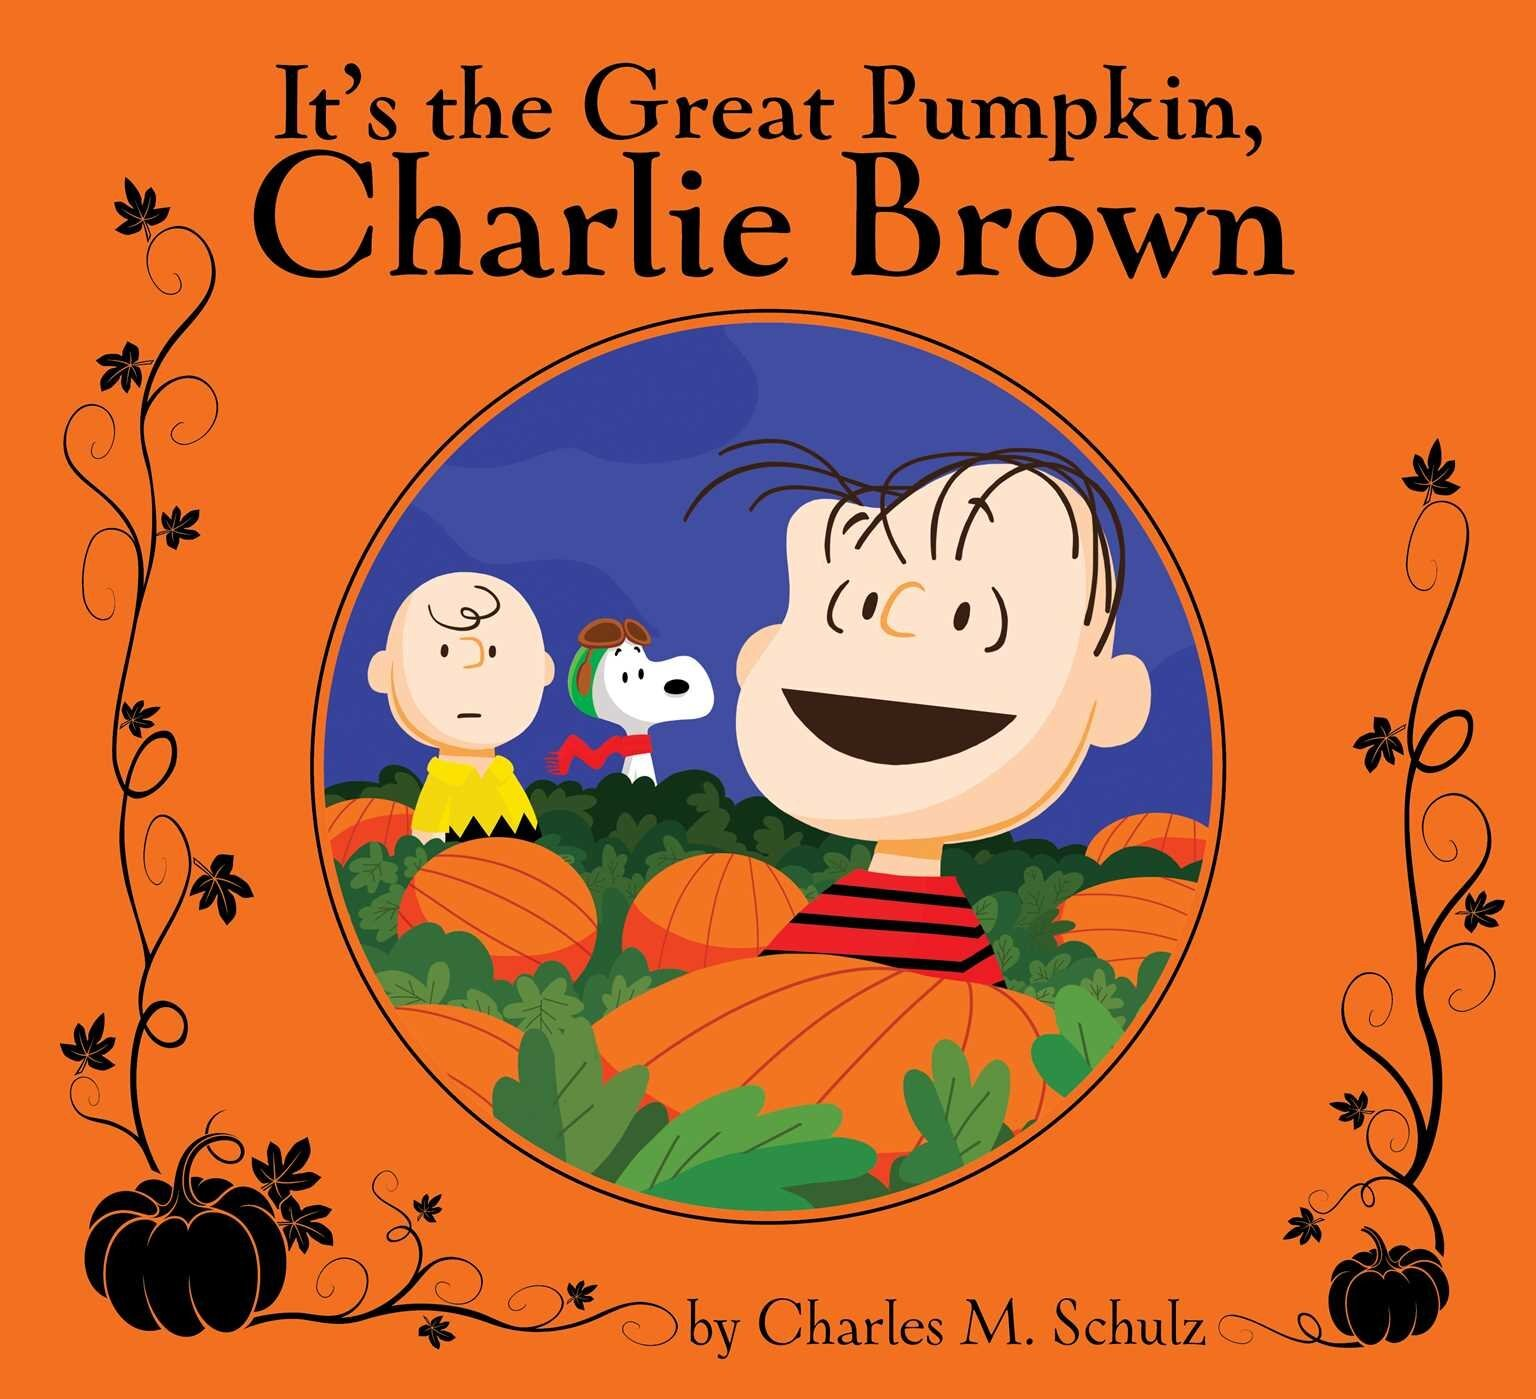 The Best Halloween Picture Books - It's the Great Pumpkin Charlie Brown.jpg